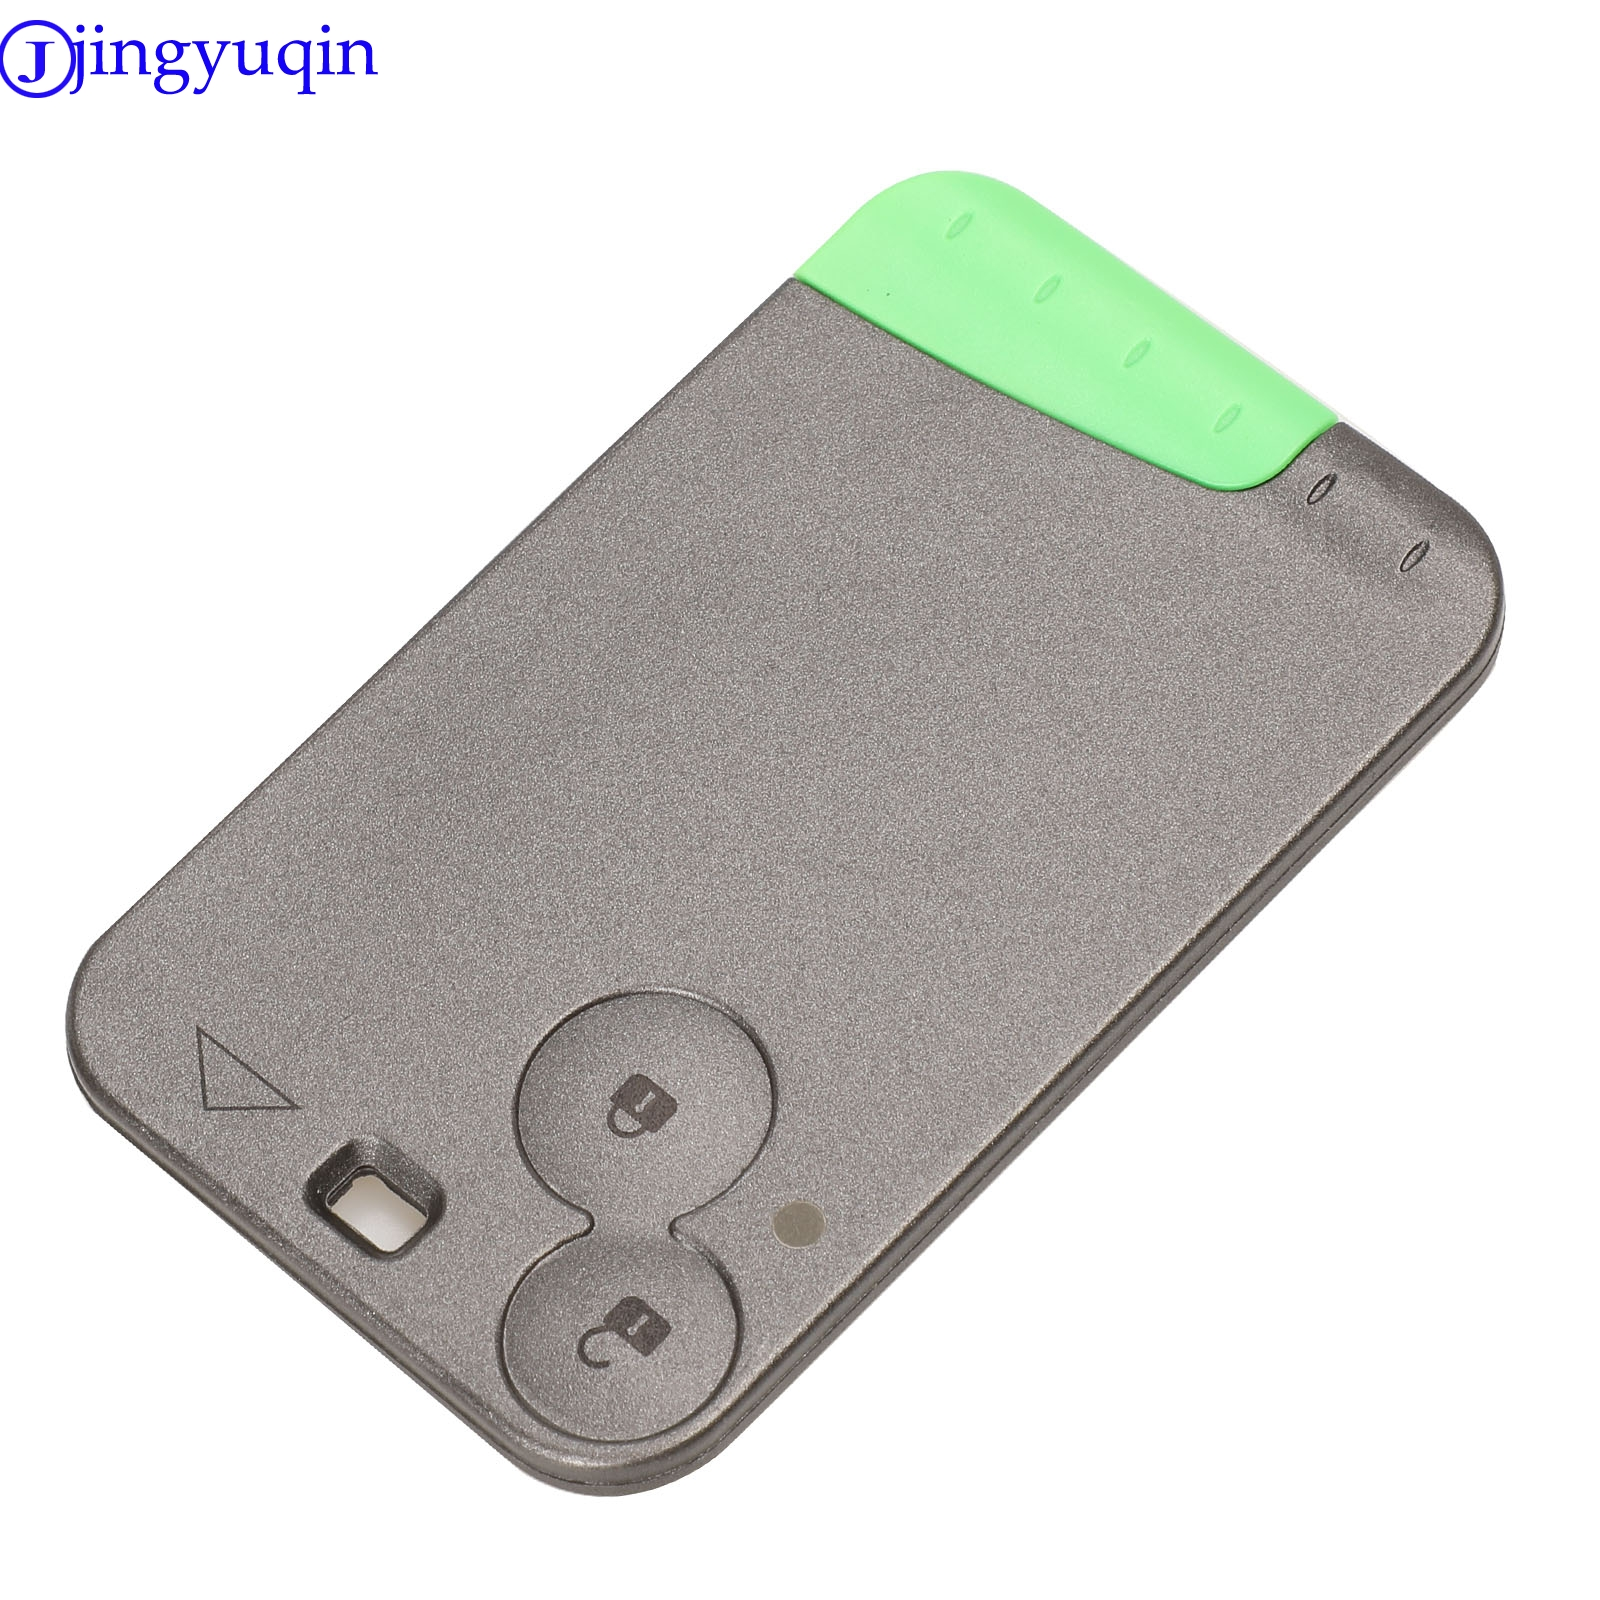 Image 2 - jingyuqin 433 MHz Pcf7947 Chip 2 Buttons Remote Car Key Card Shell Case With Blade For Renault Laguna with Uncut Key Blade-in Car Key from Automobiles & Motorcycles